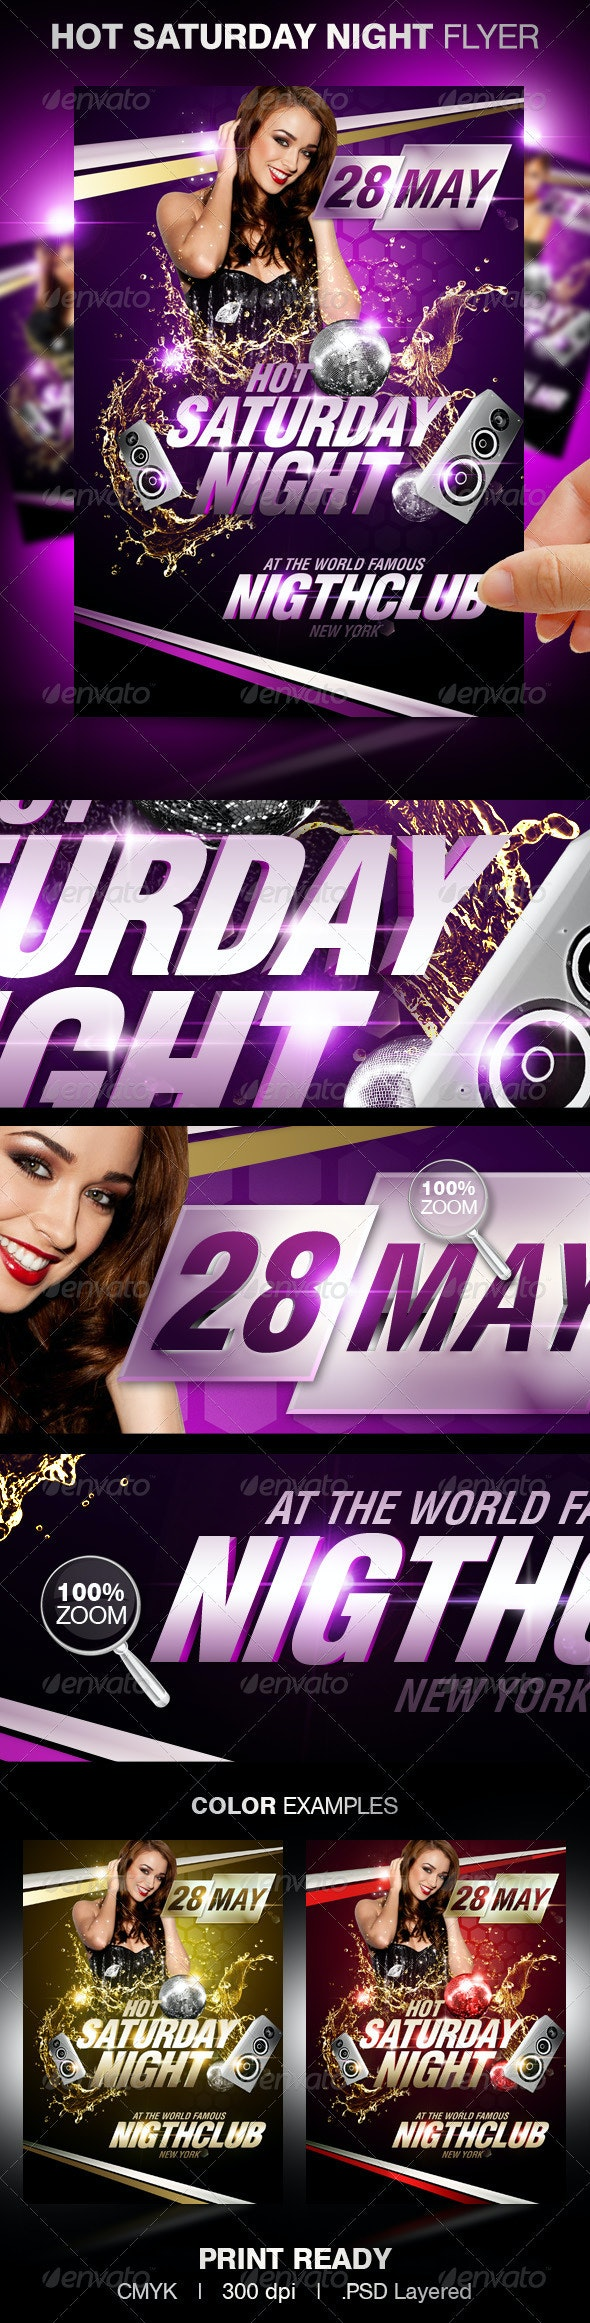 Hot Saturday Night Party Flyer - Clubs & Parties Events